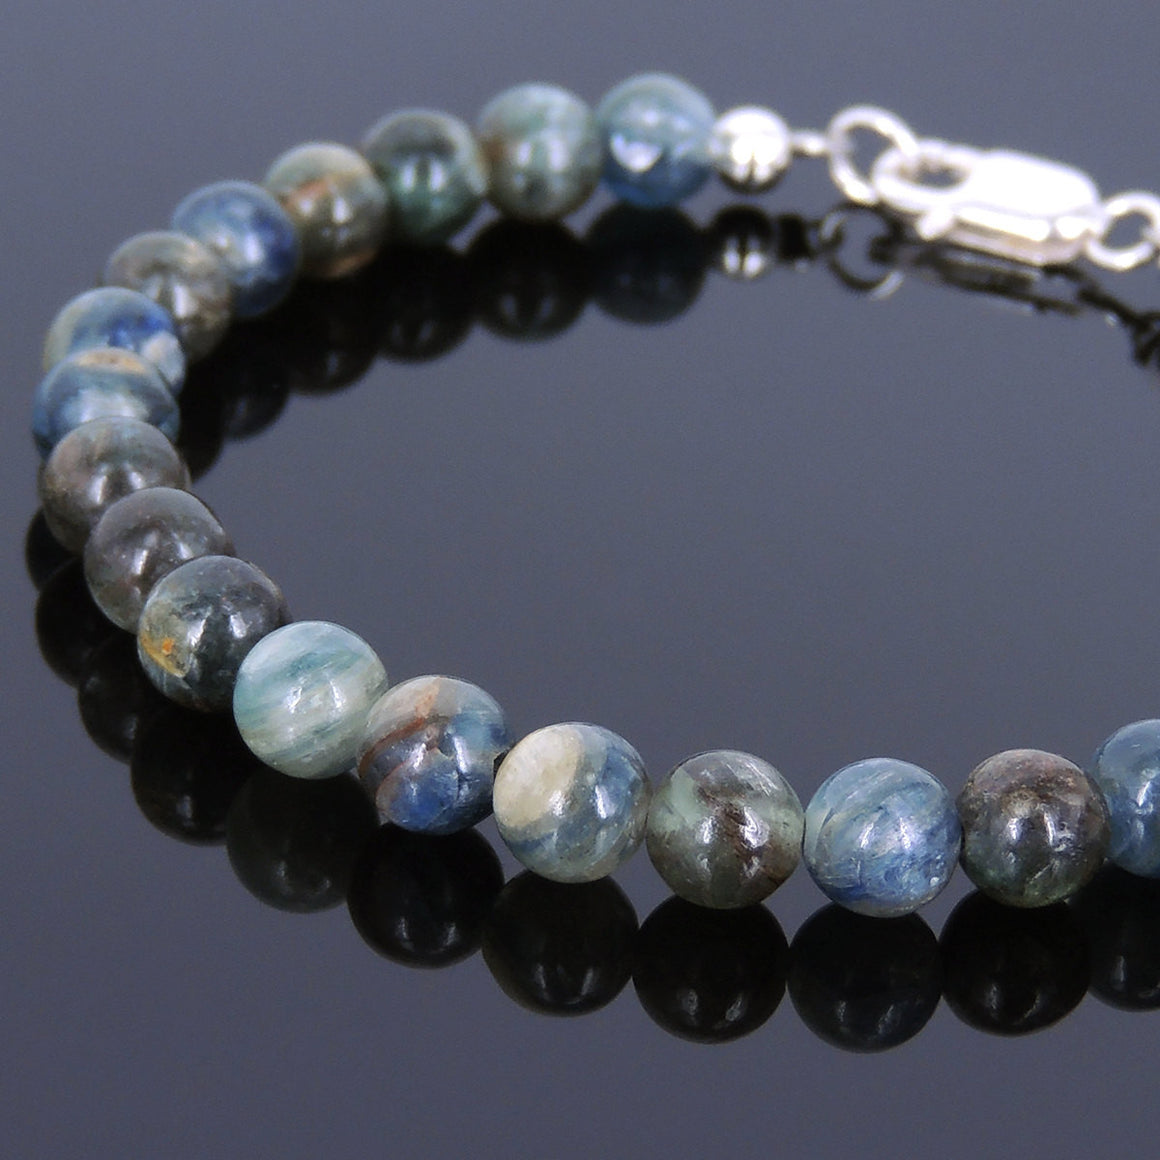 6mm Kyanite Healing Gemstone Bracelet with S925 Sterling Silver Spacer Beads & Clasp - Handmade by Gem & Silver BR556